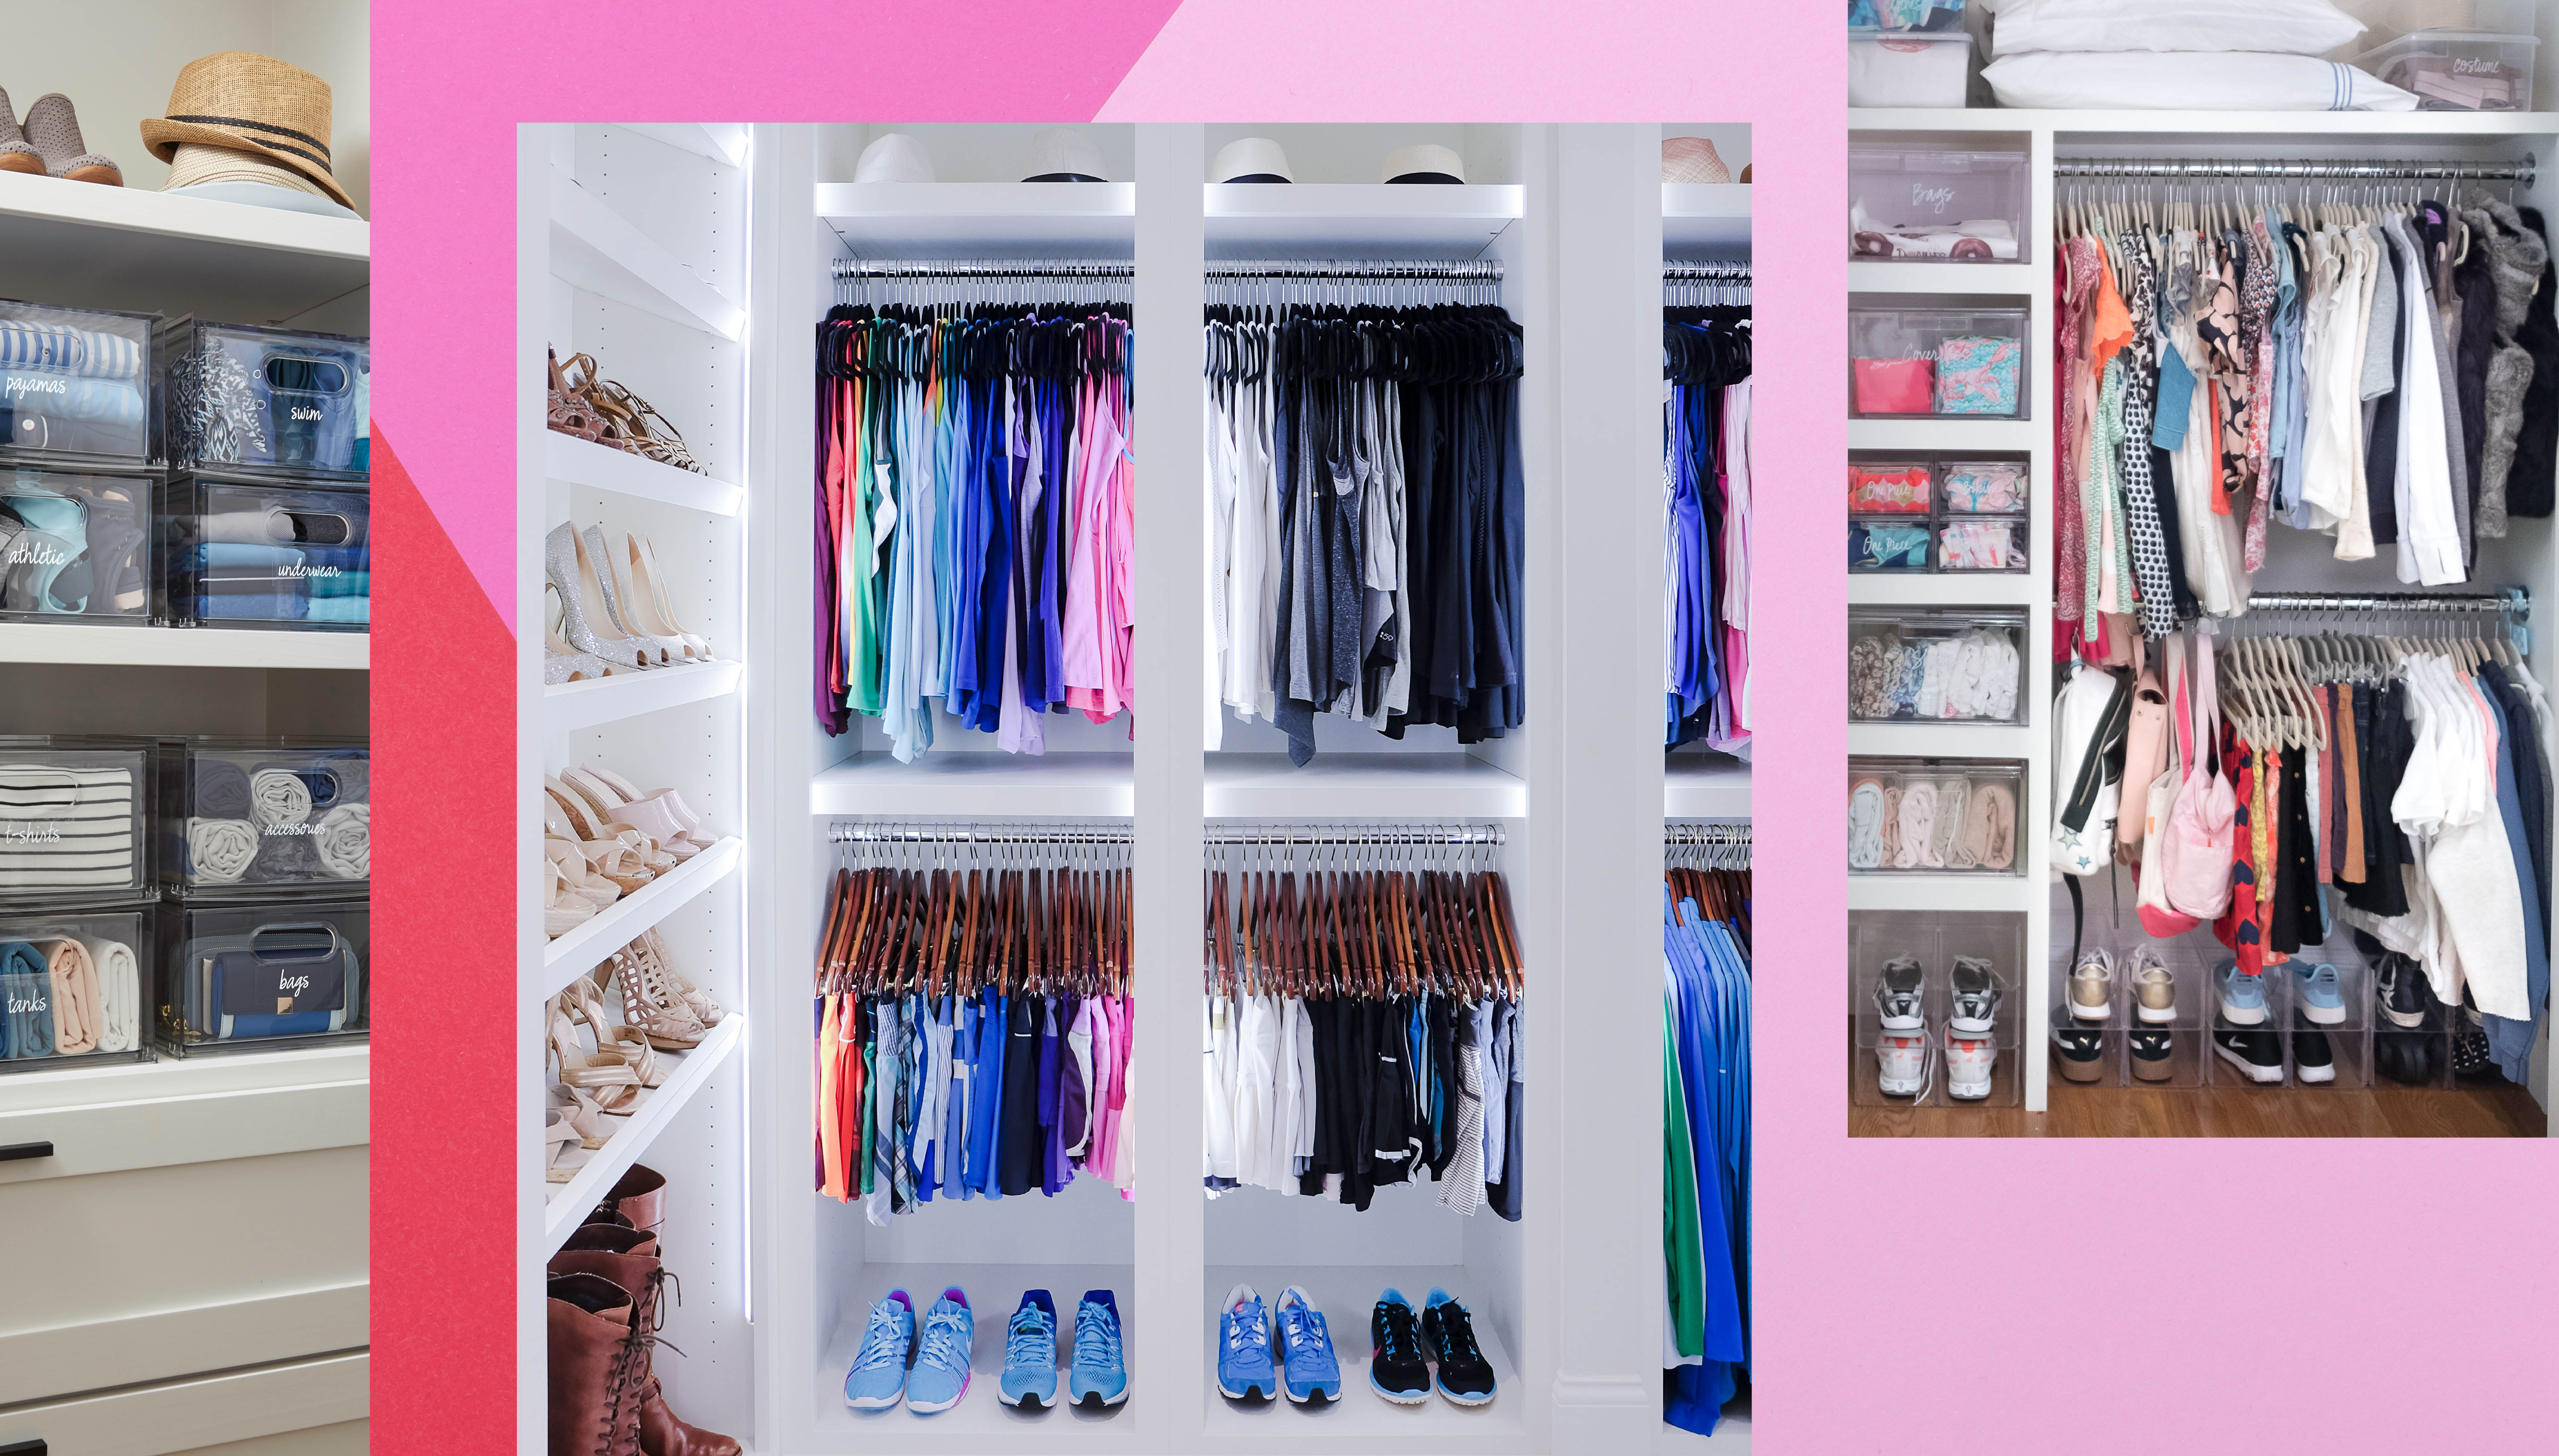 The quest for the perfect closet